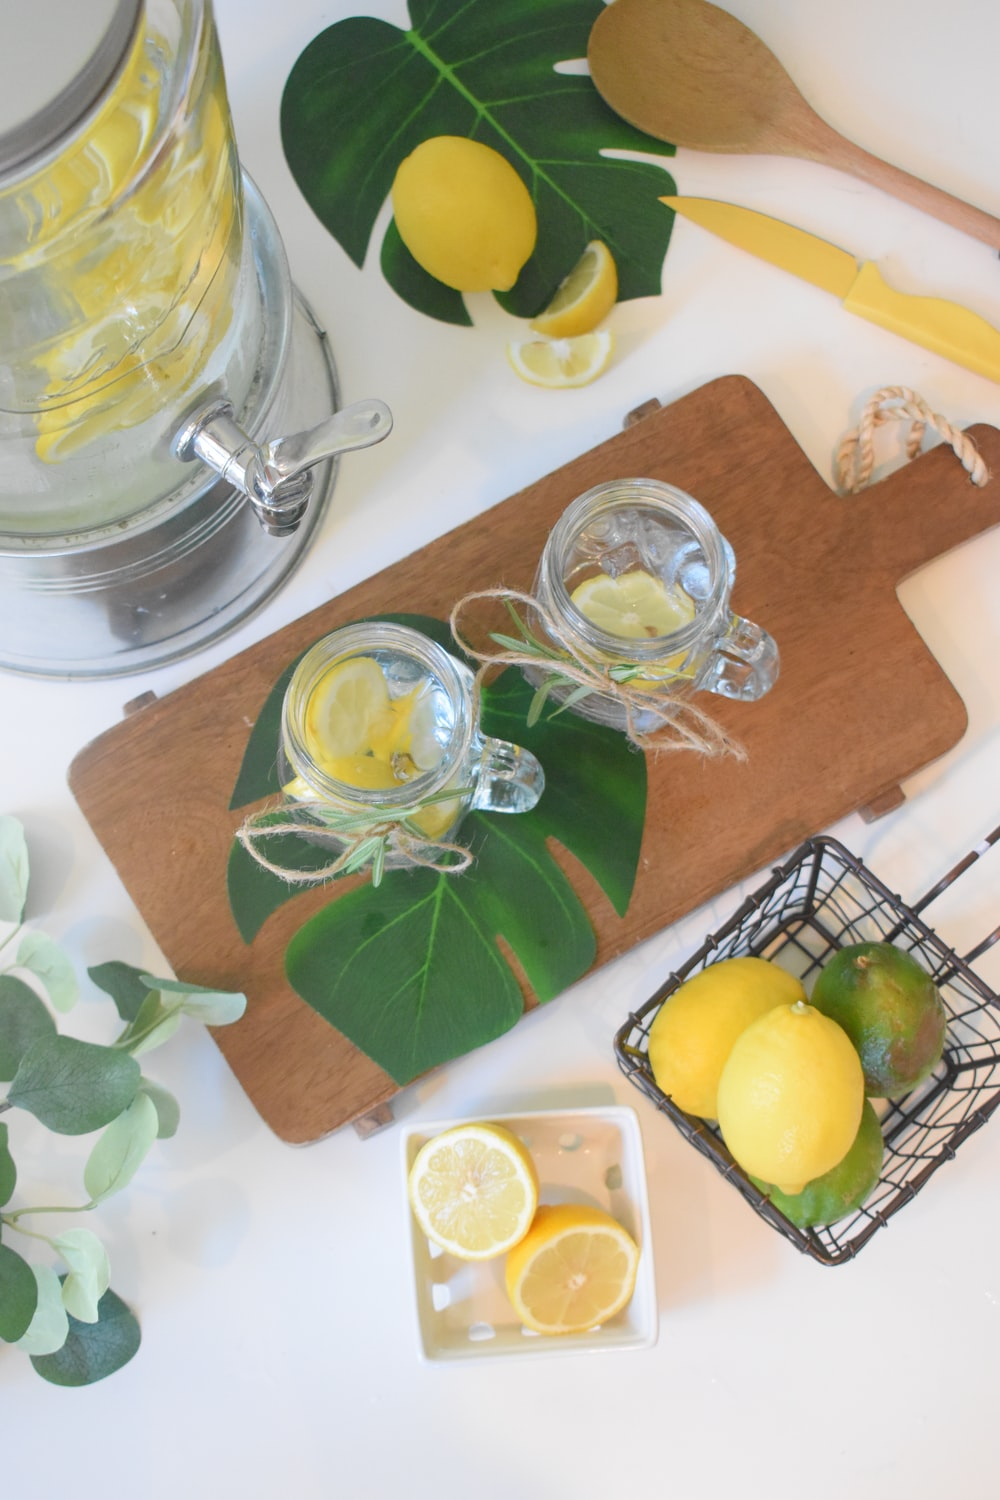 clear glass mug with lemon and water